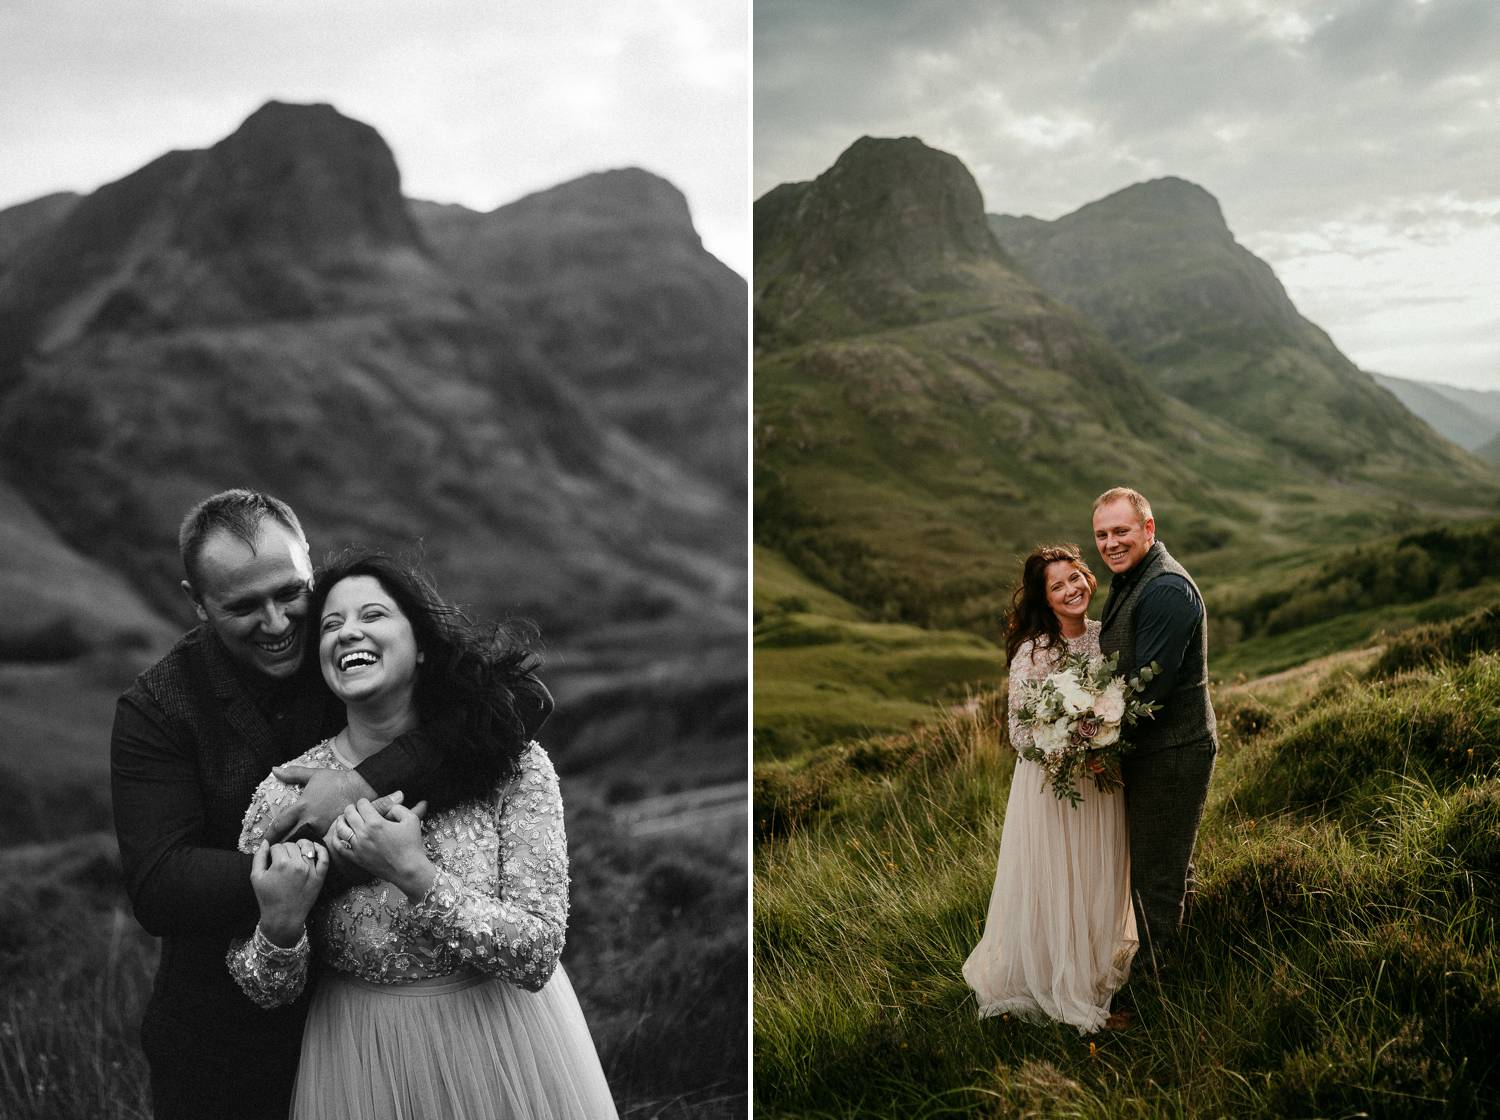 A bride and groom are photographed smiling and embracing amid the foggy hills of Ireland. Photographed by Rob Dight.